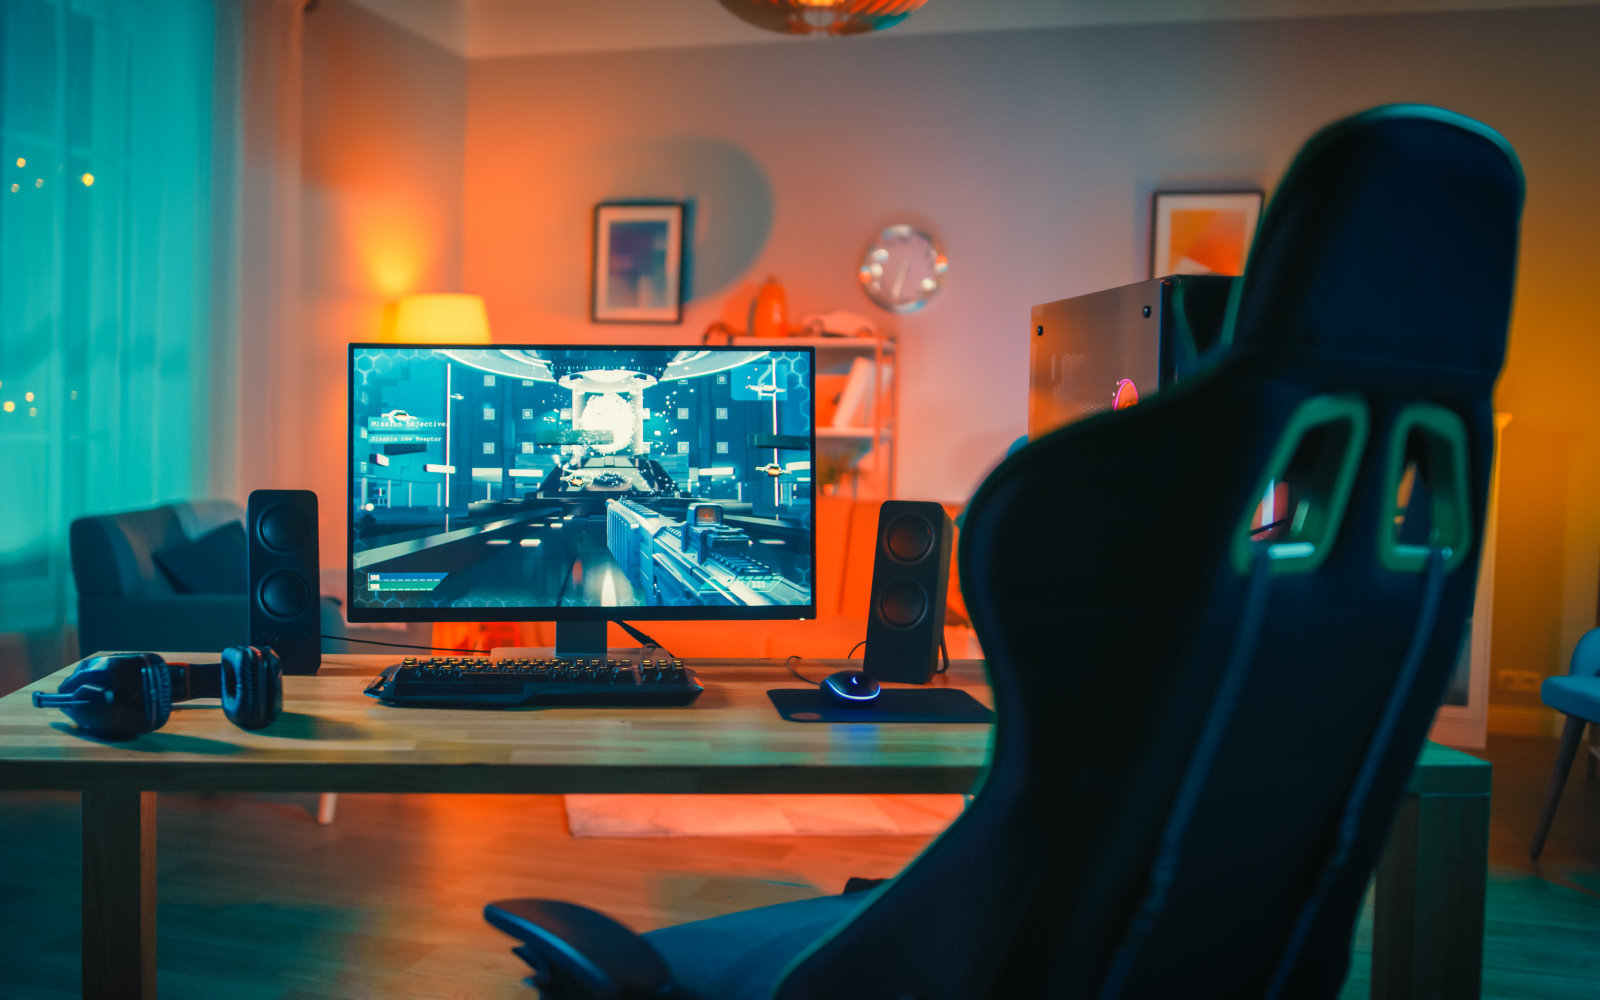 Powerful Personal Computer Gamer Rig with First-Person Shooter Game on Screen. Monitor Stands on the Table at Home. Cozy Room with Modern Design is Lit with Warm and Neon Light.